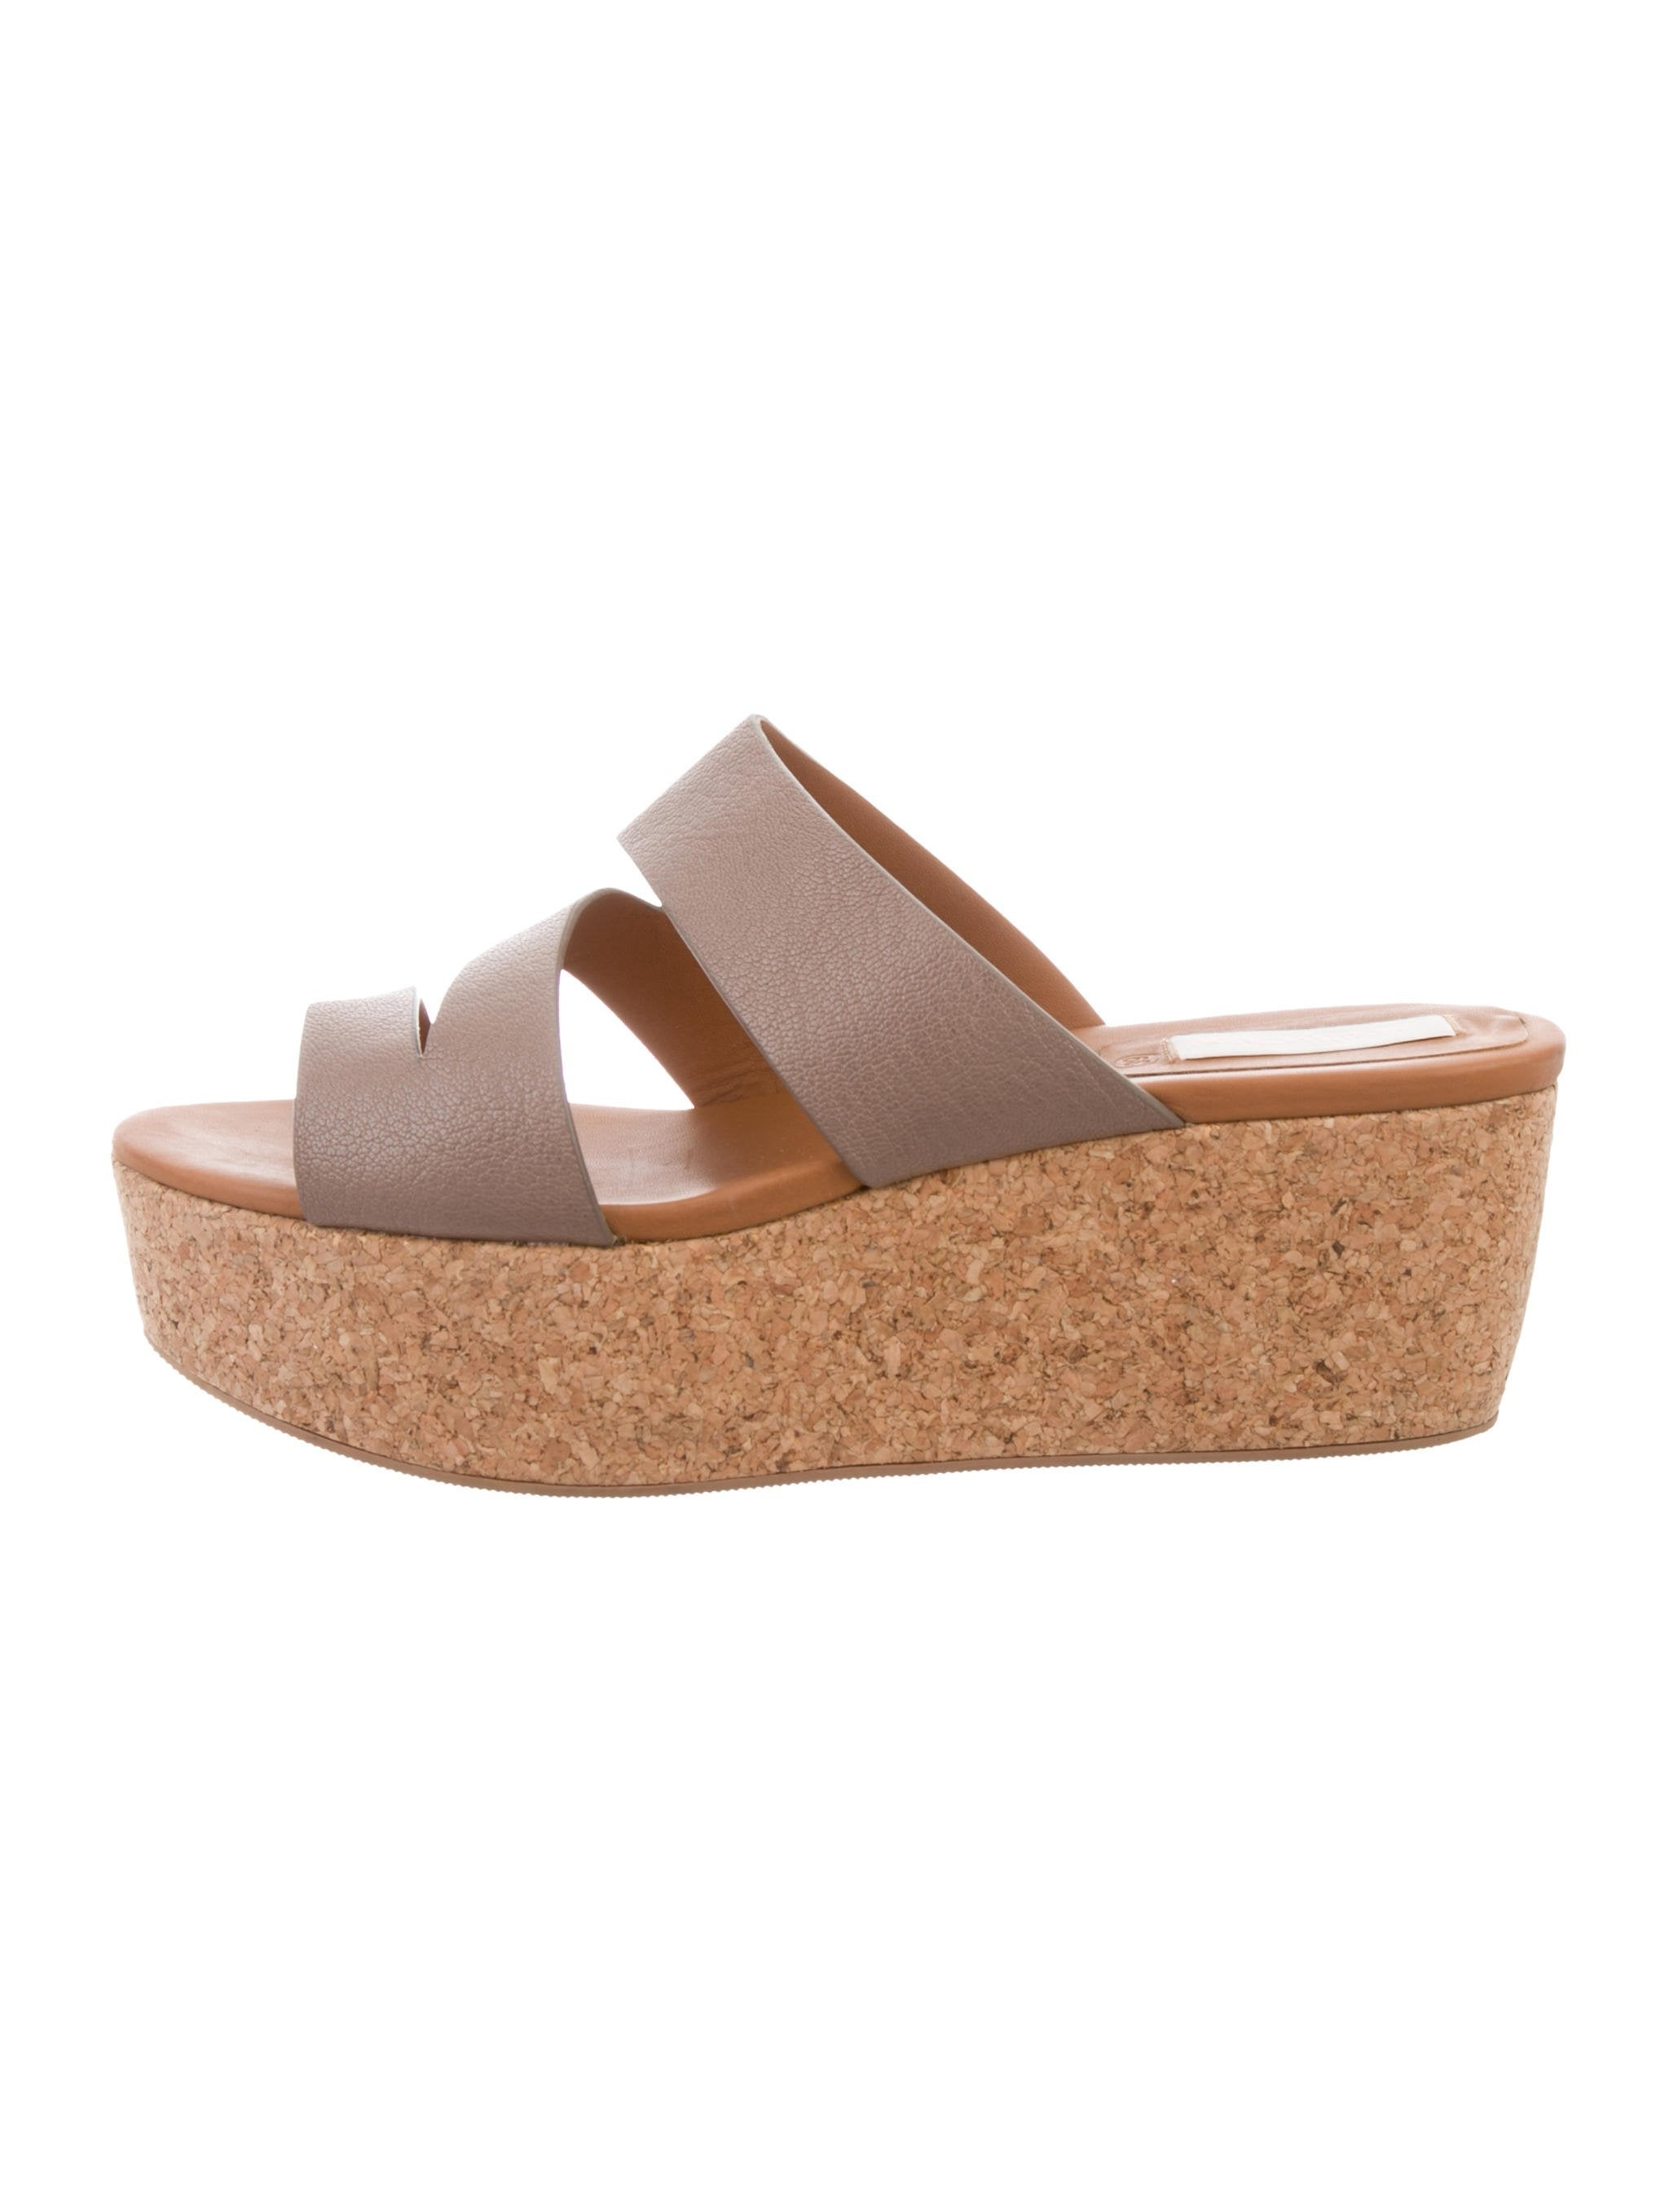 sale new arrival See by Chloé Multistrap Platform Sandals cheap reliable cheap sale amazing price wJt8ca1X